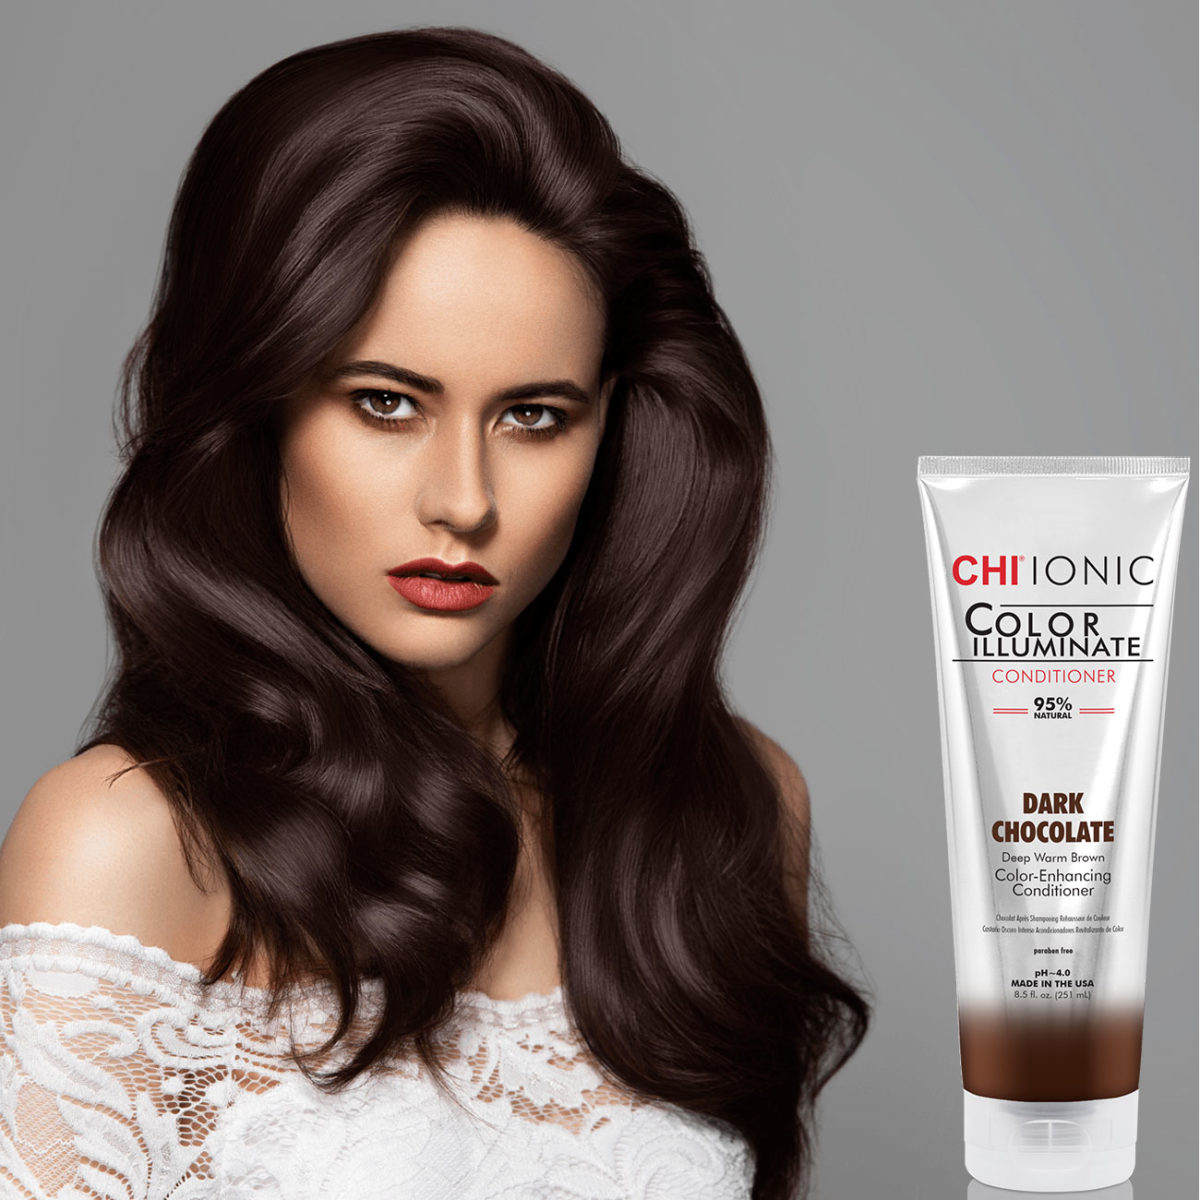 CHI Ionic Color Illuminate Conditioner Lavender Plum with Model 2 - CHI Hair Color